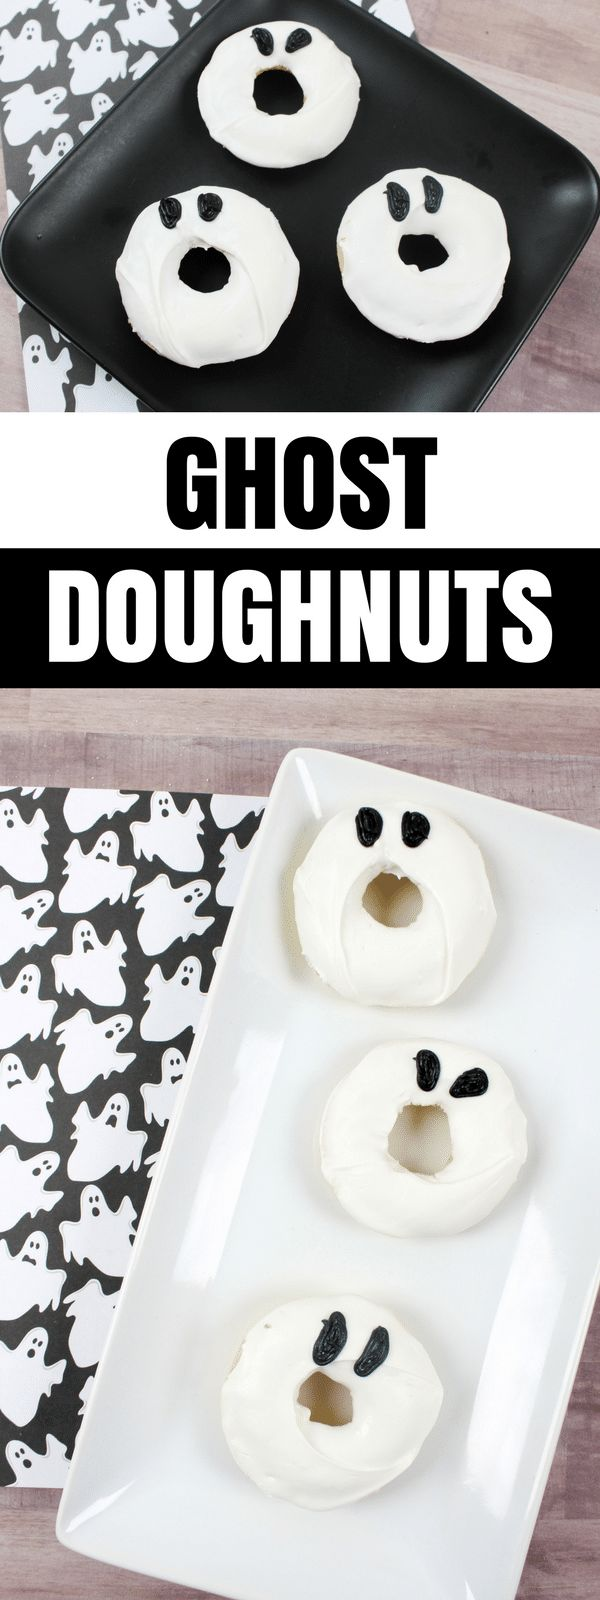 Everyone is sure to love these super cute ghost doughnuts this #Halloween. And, you will love how amazingly quick and easy they were to make!